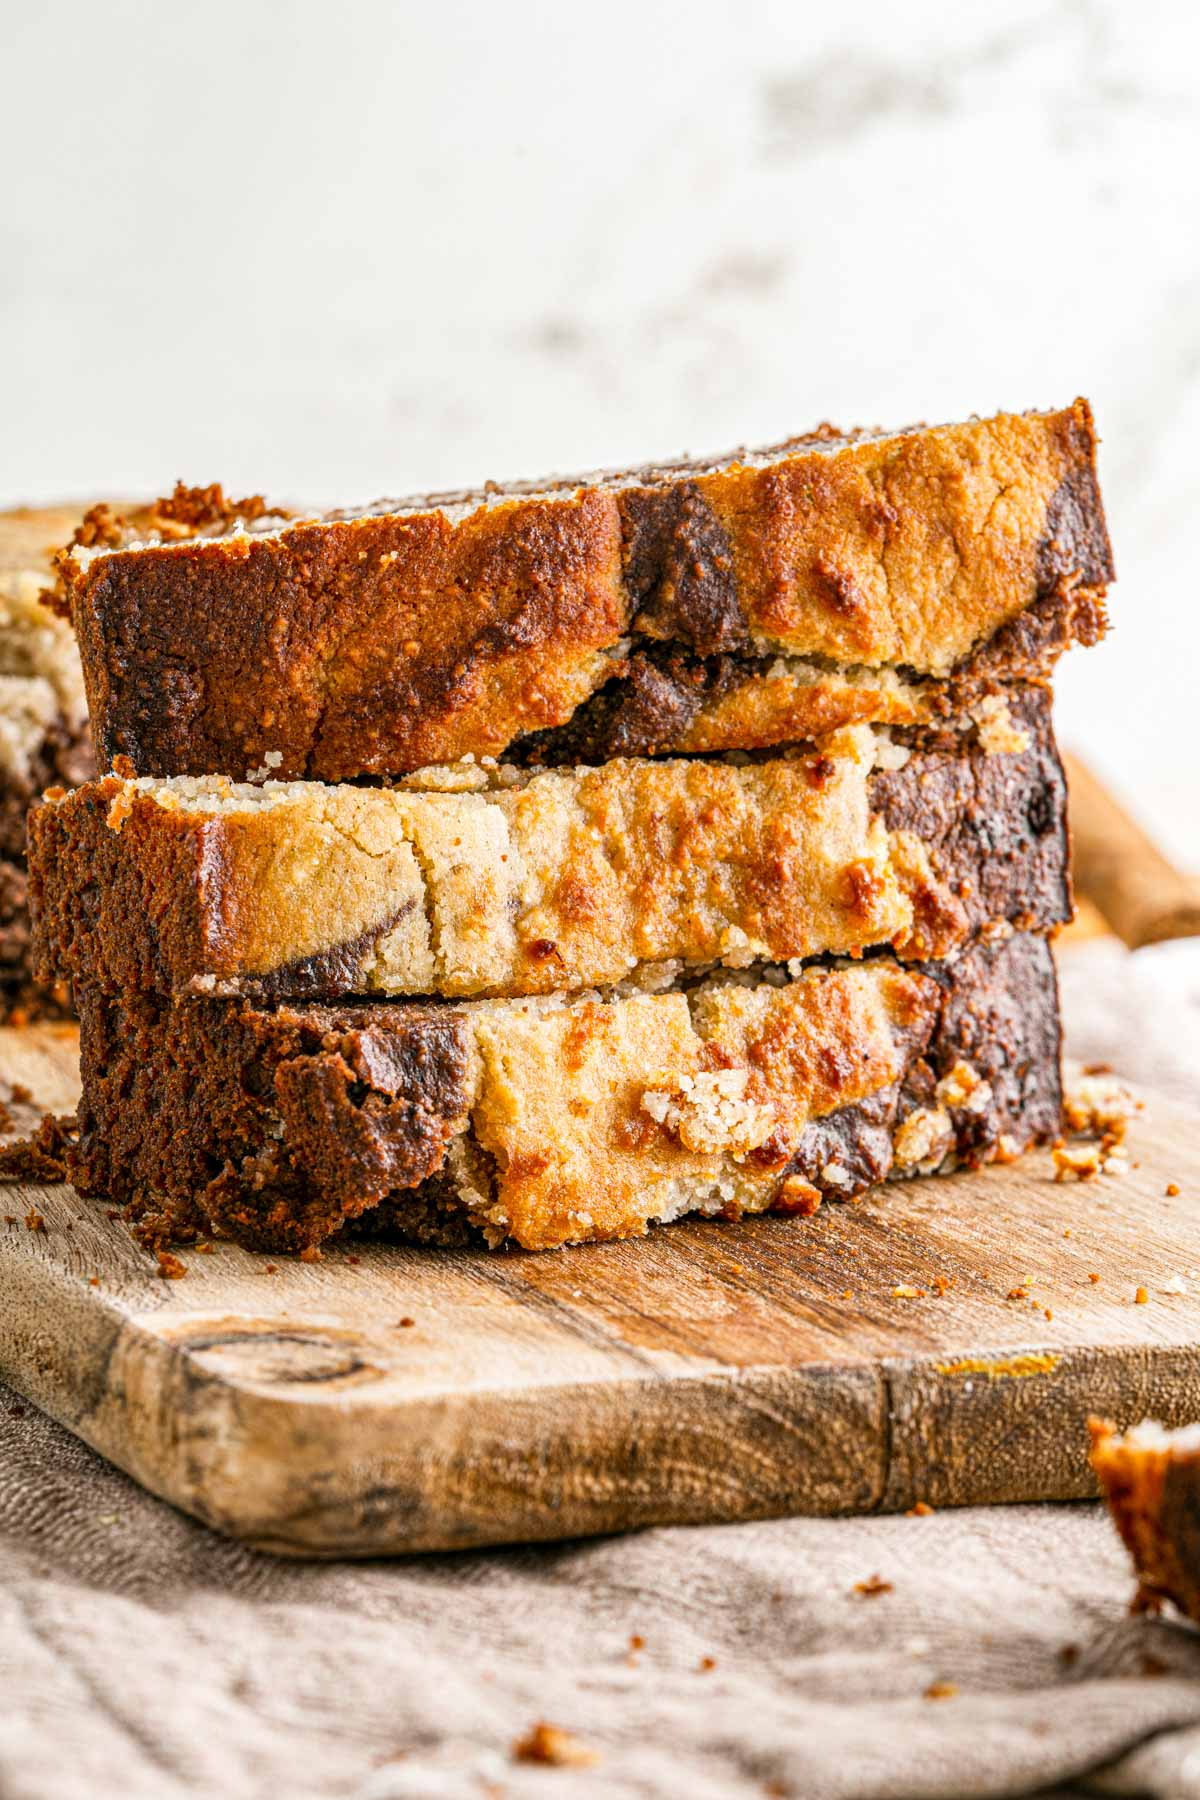 three slices of banana bread stacked in a pile on a wooden cutting board